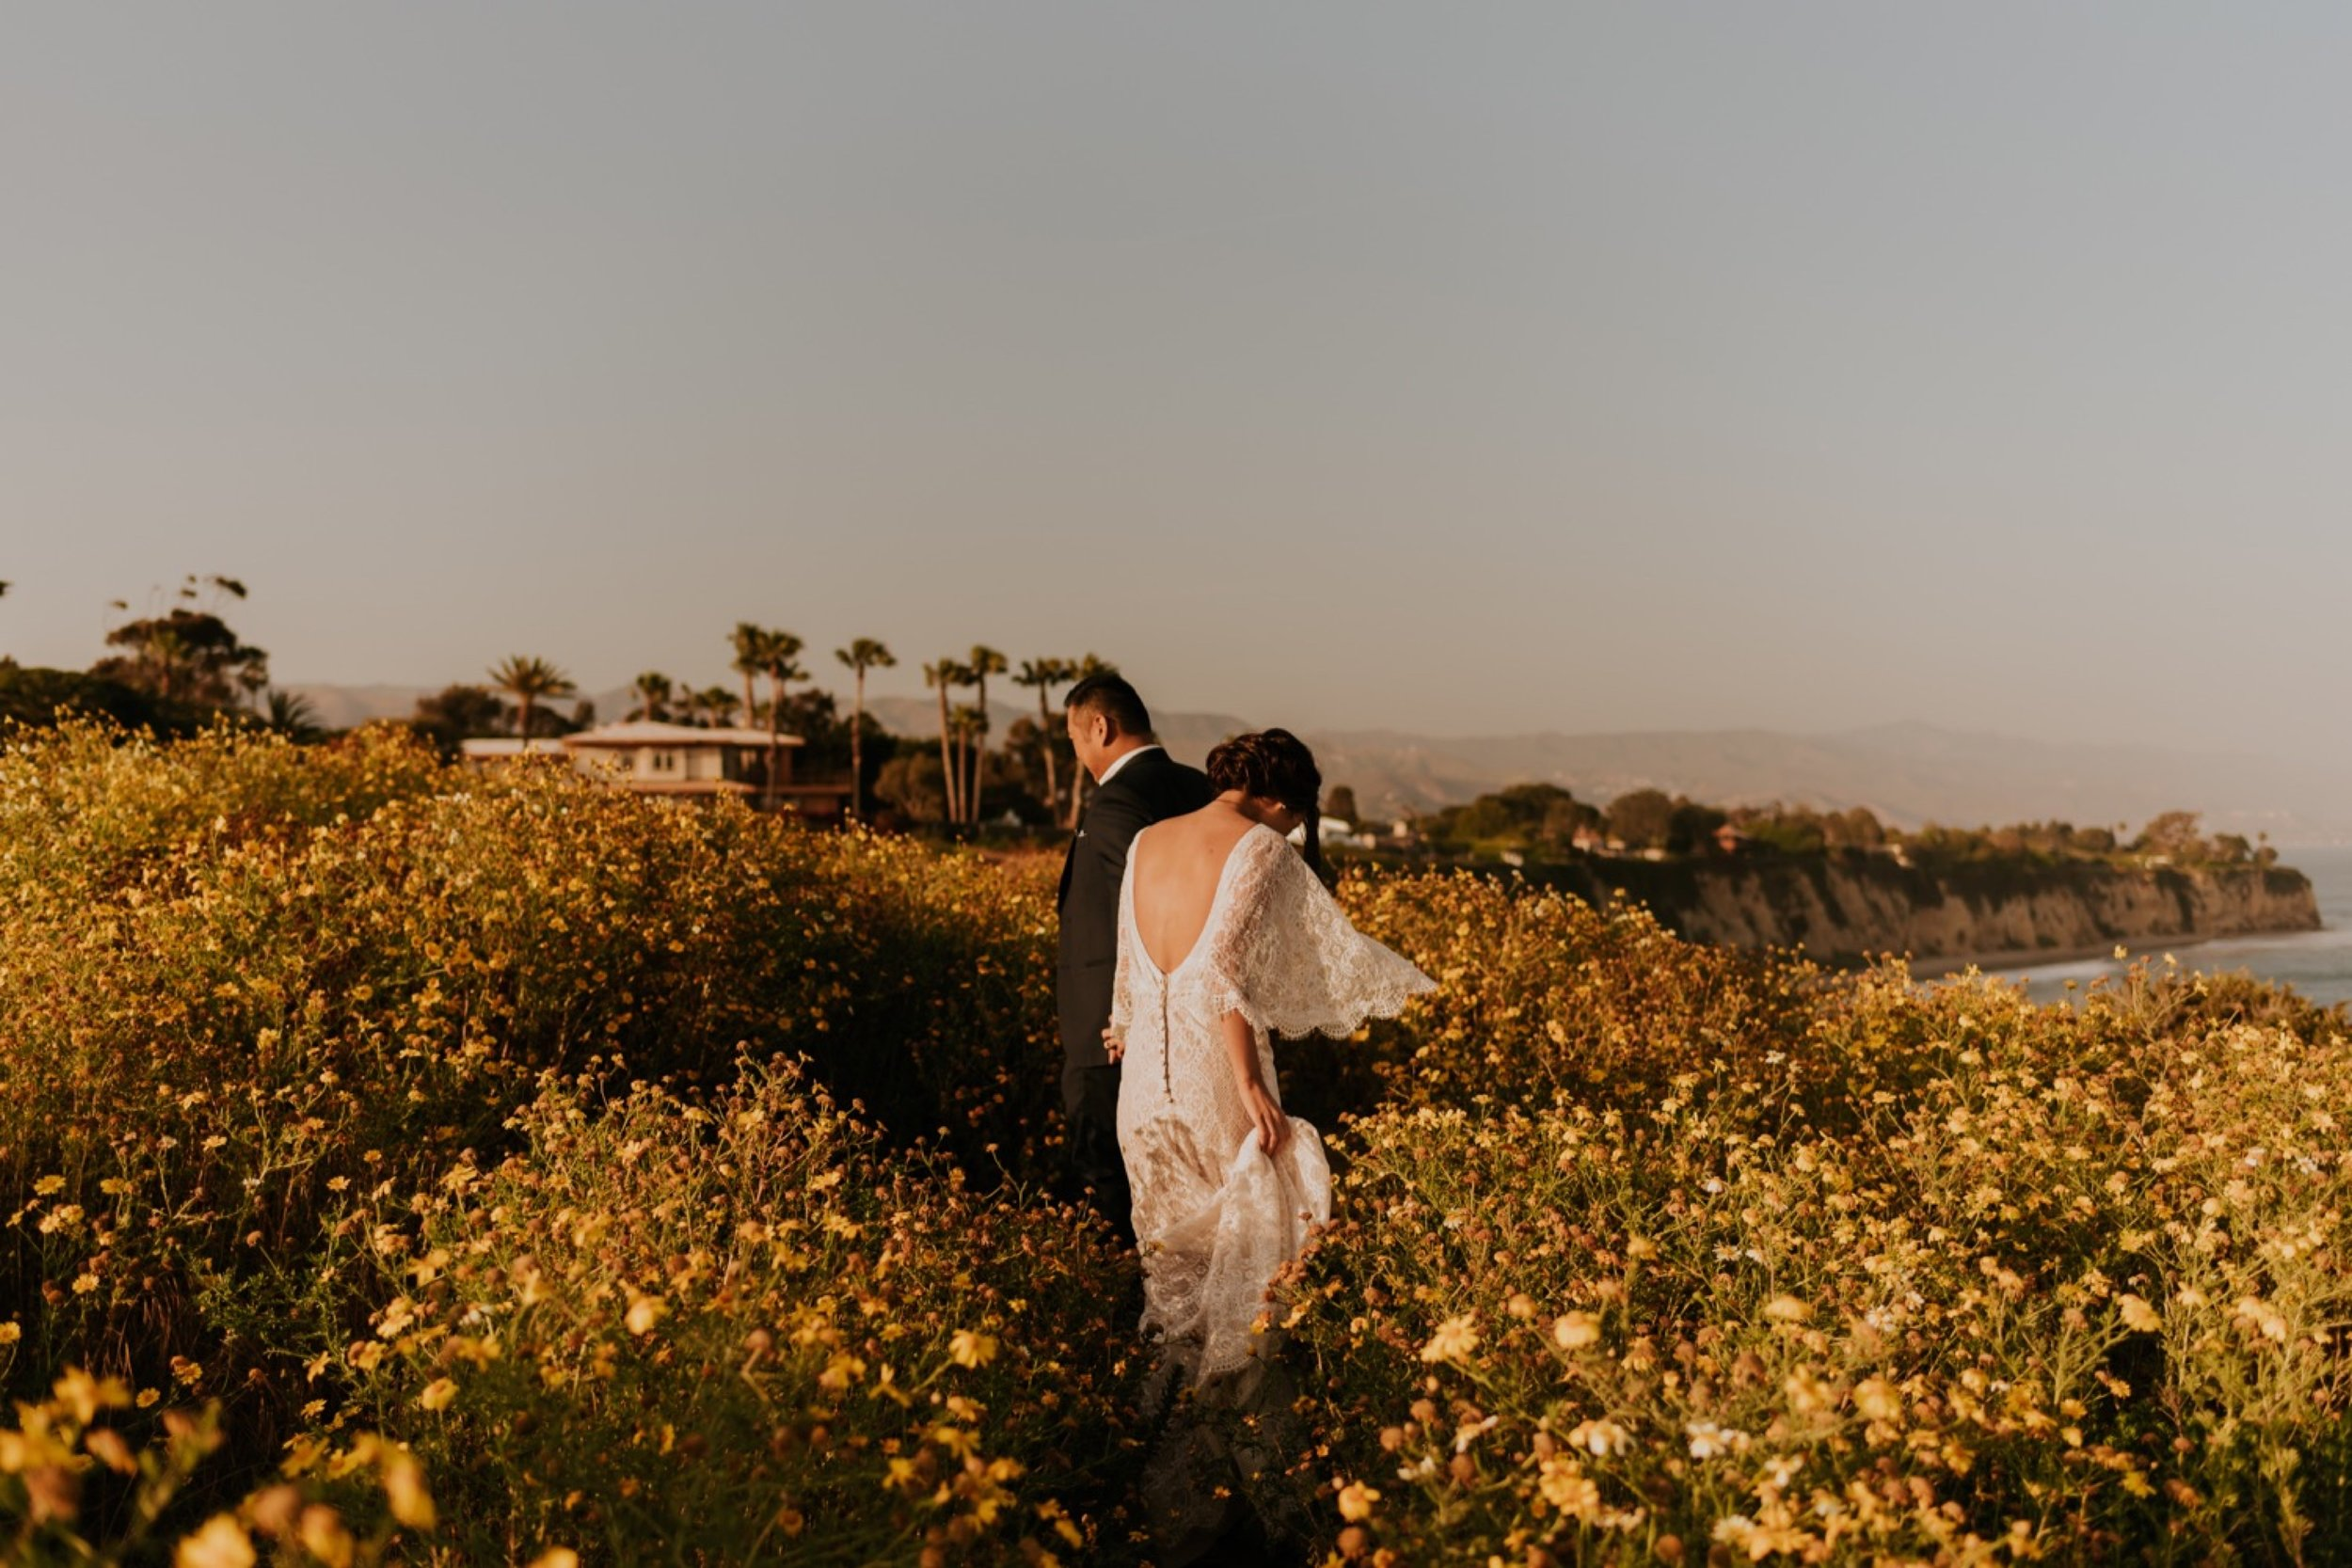 Point Dume, Malibu Engagement Session | Carrie Rogers Photography | Malibu Wedding Photographer | Malibu Cliffside Elopement | #elopement #couples